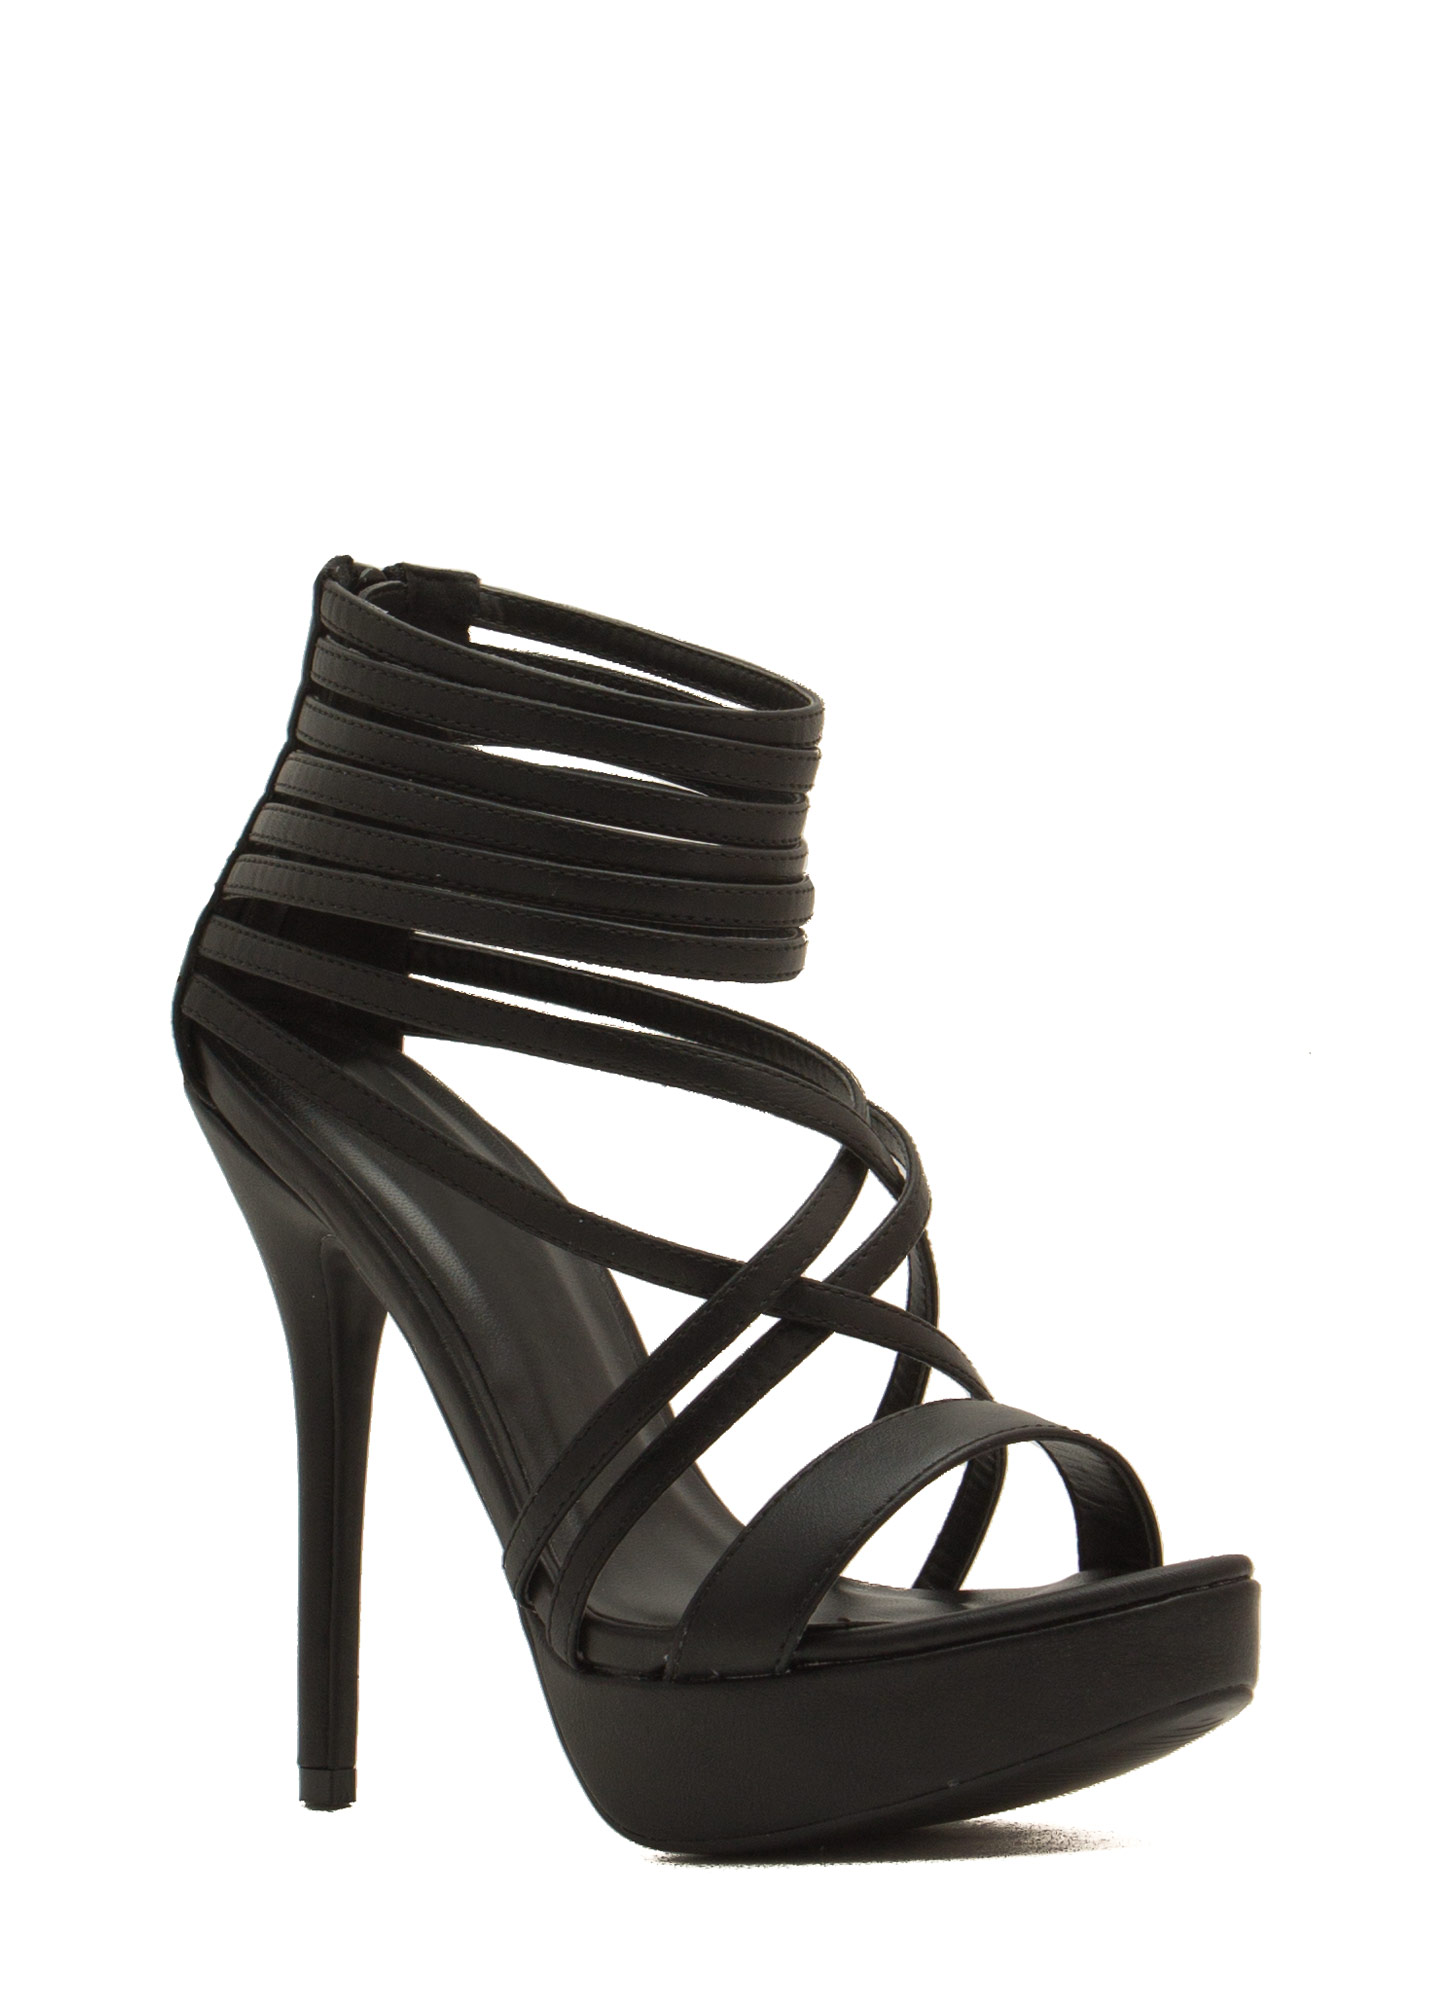 Strap Attack Faux Leather Heels BLACK